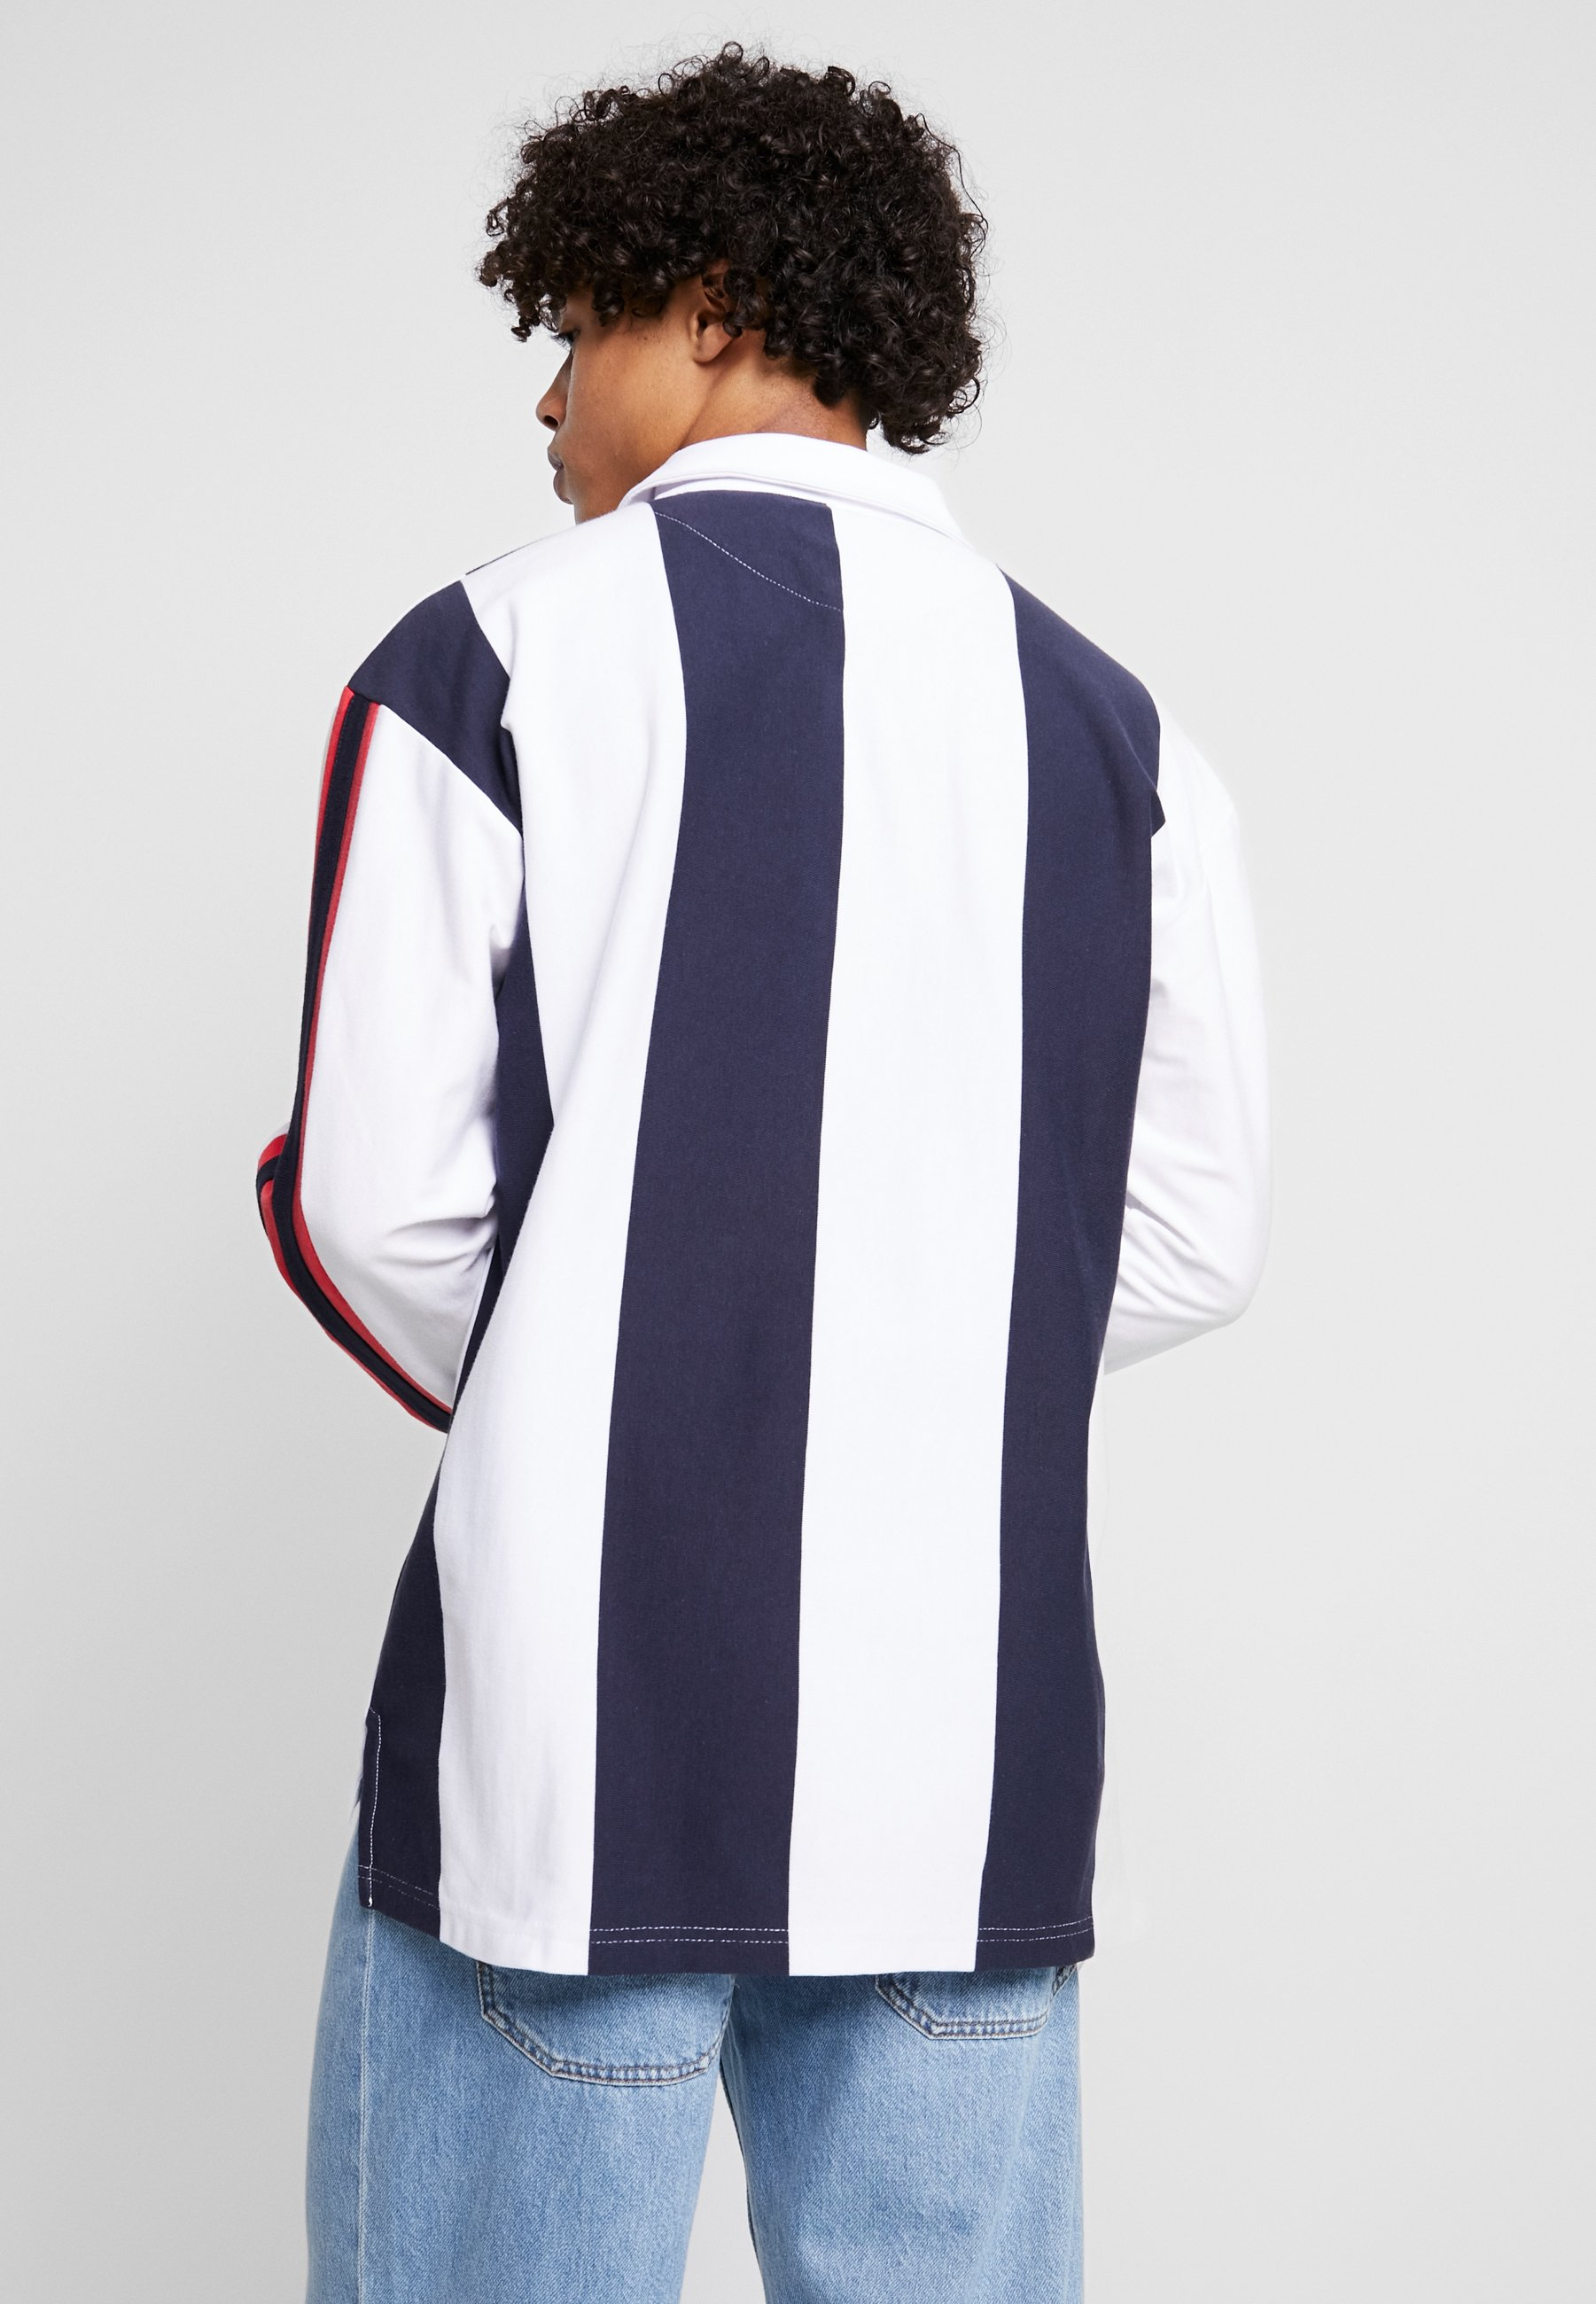 red White Karl College RugbyPolo Kani navy Y7fIbyv6gm